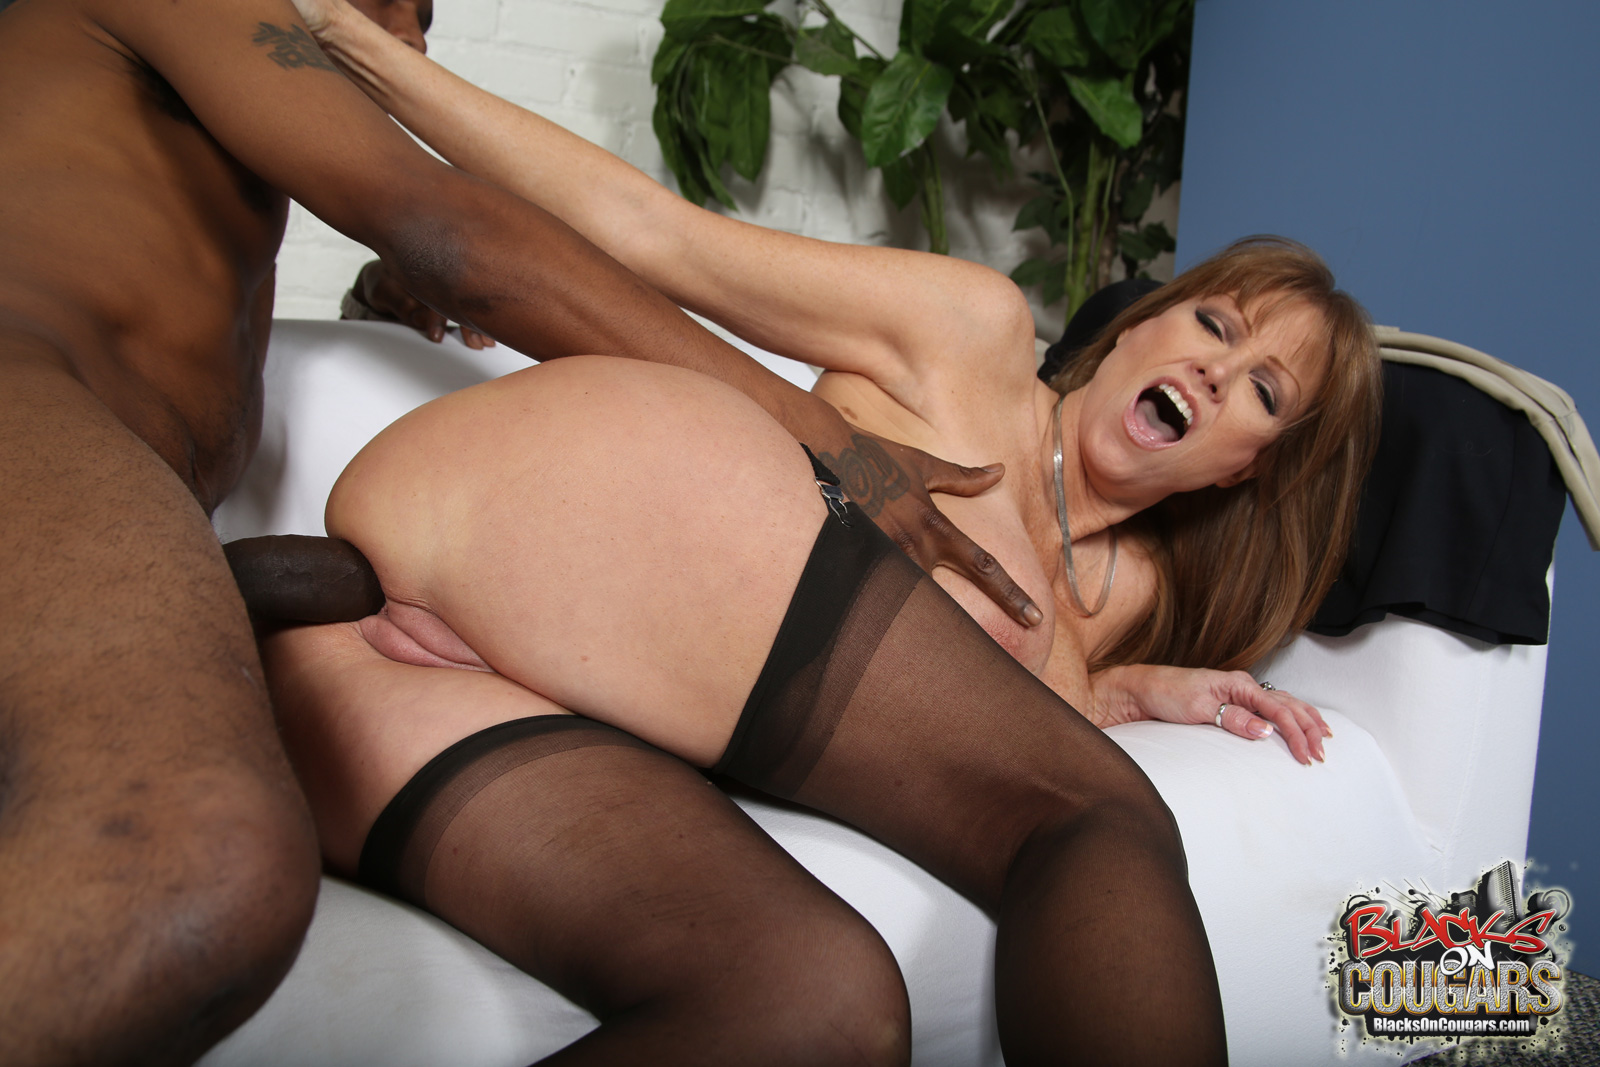 Darla crane anal video